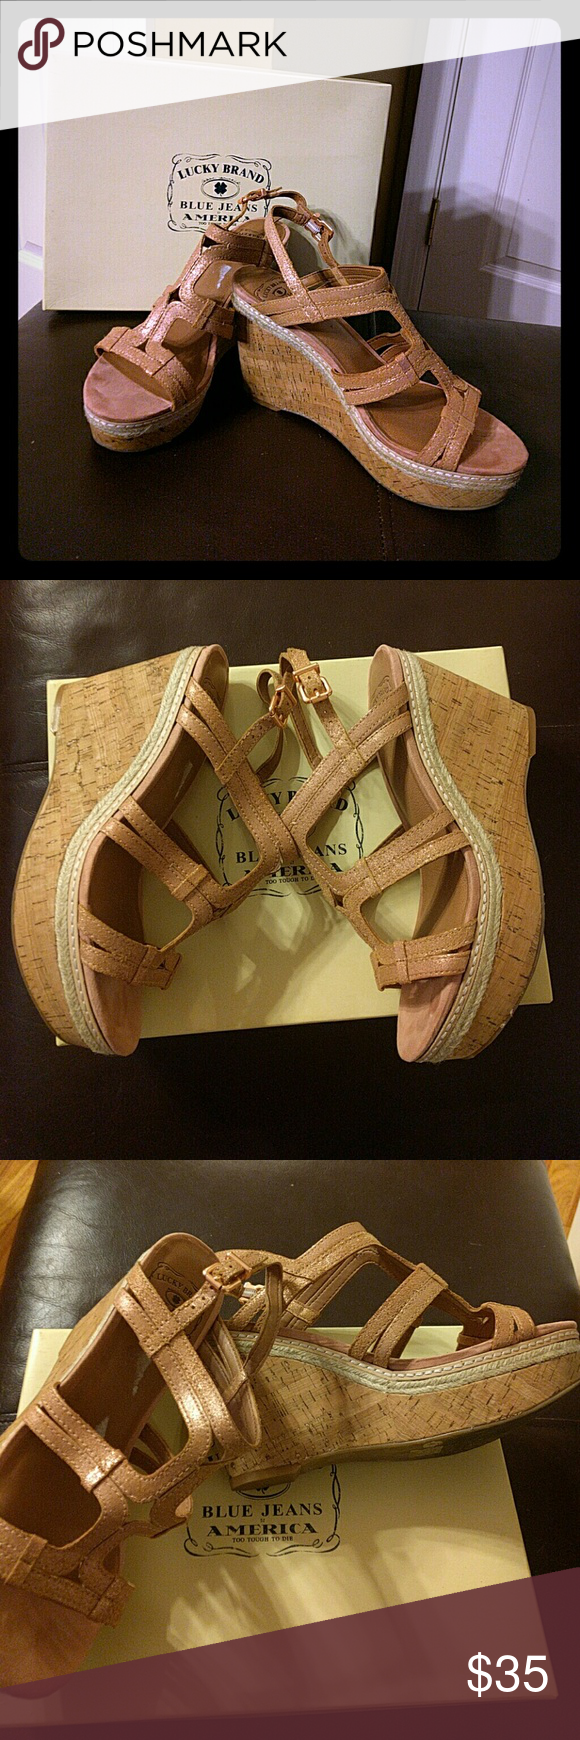 LUCKY BRAND WEDGES BEAUTIFUL *Rose Gold* Lucky wedges - Worn ONCE, like new! With Box Lucky Brand Shoes Wedges